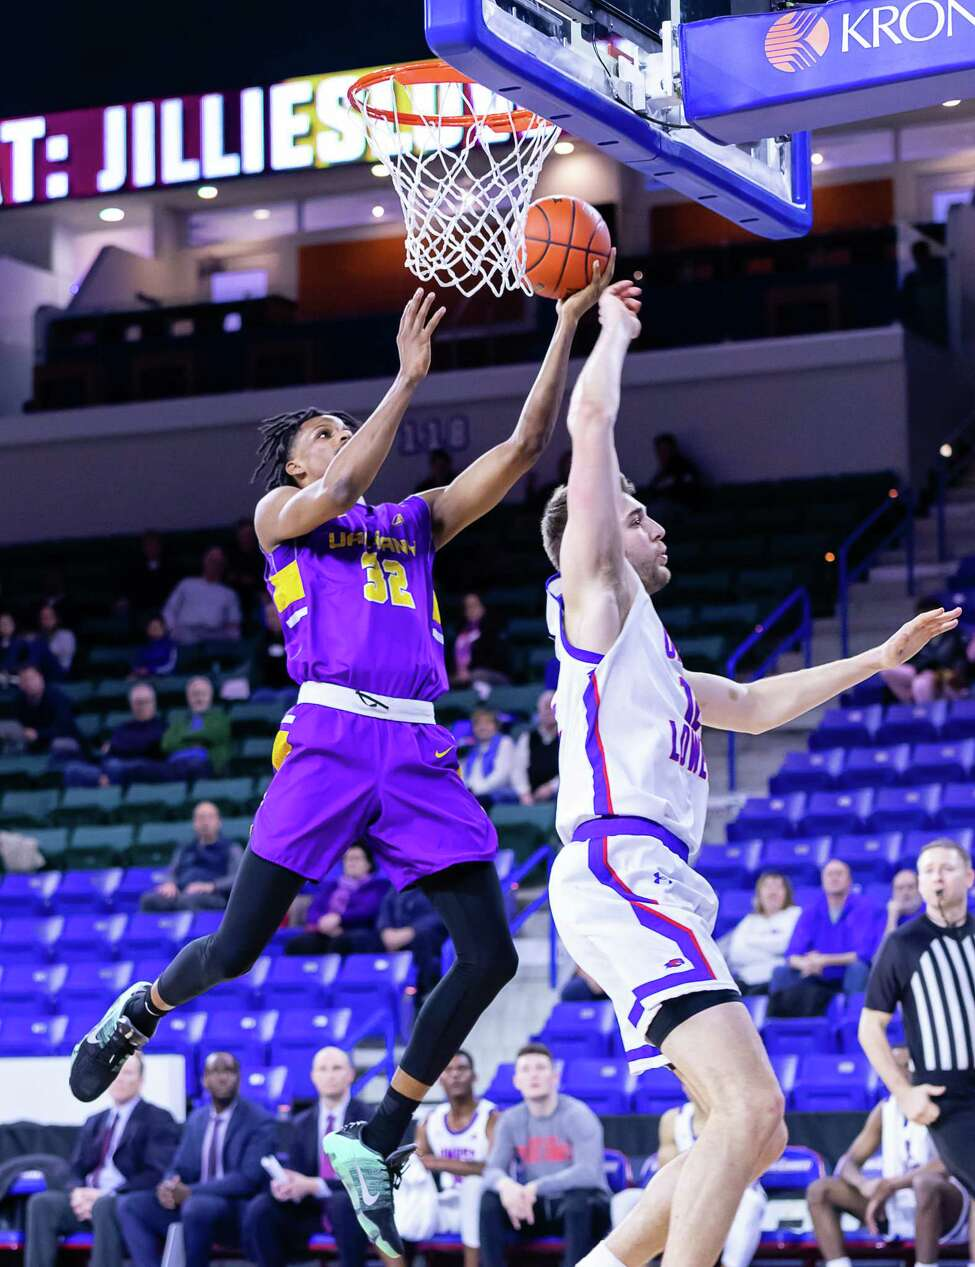 UAlbany's Romani Hansen puts up a shot in the lane against UMass Lowell during their game on Wednesday, Feb. 26, 2020, at Tsongas Arena. (Courtesy of Brent Warzocha)